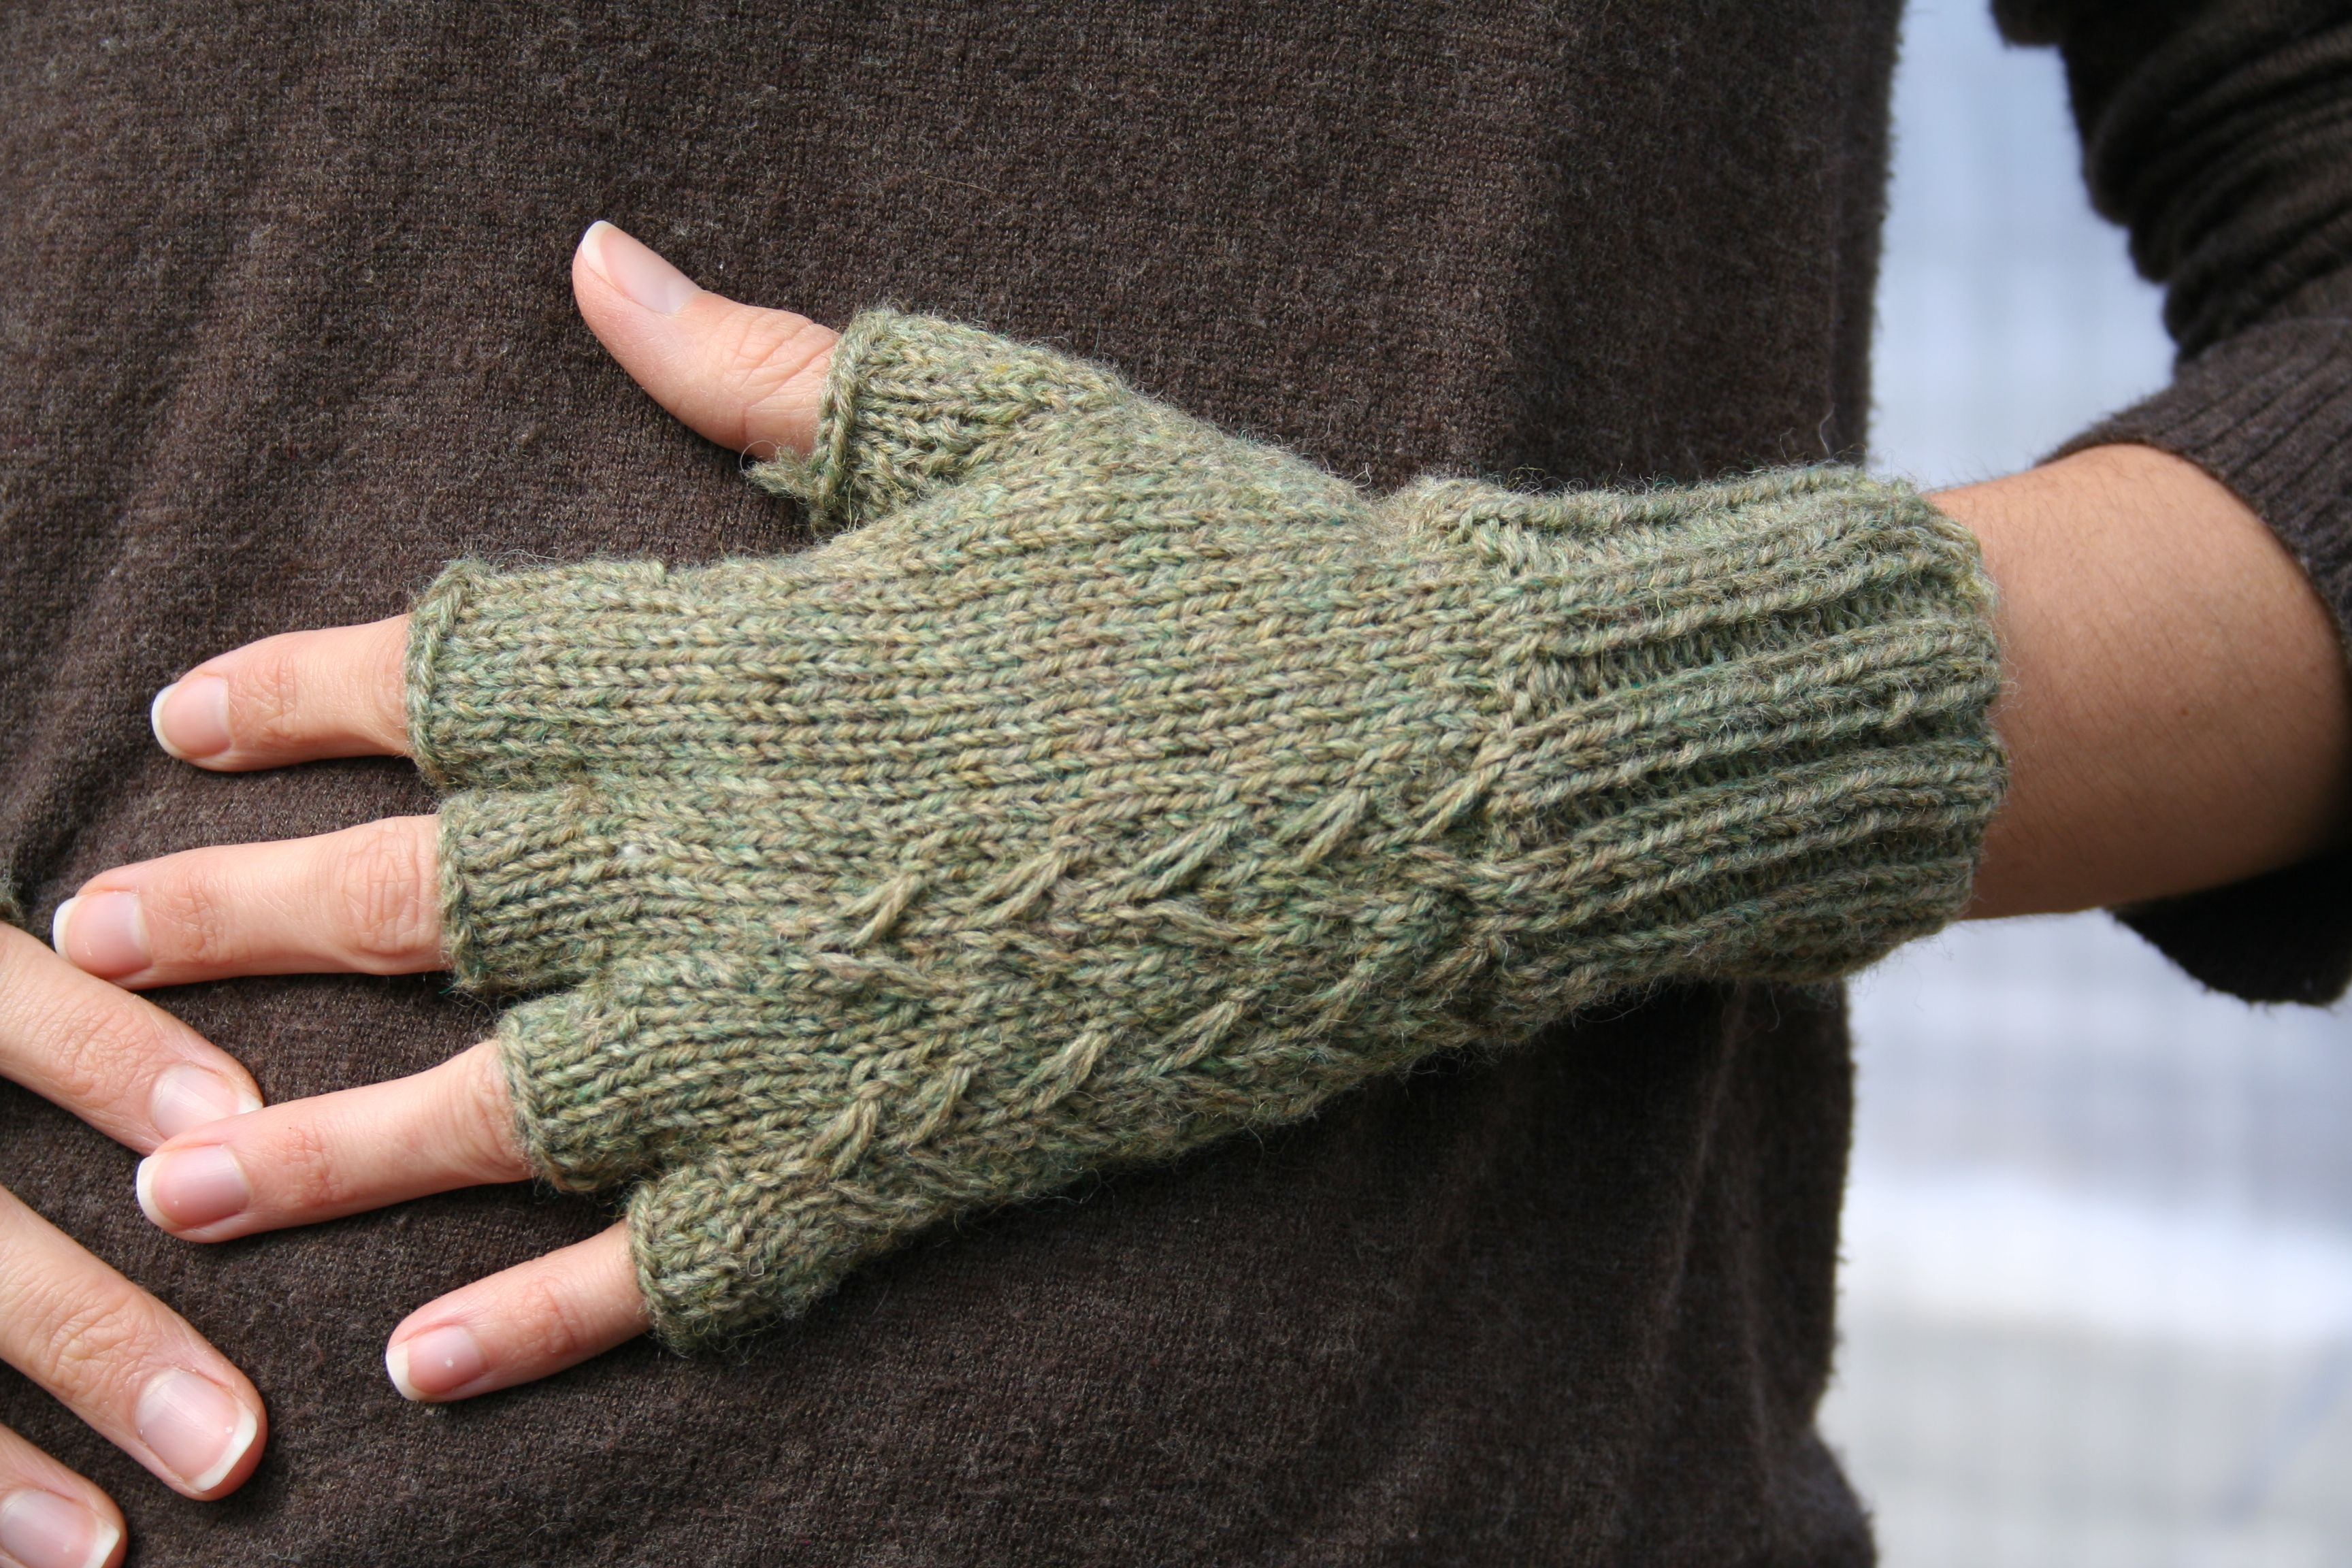 Fern Fingerless Gloves Pattern - Knitting Patterns and Crochet ...